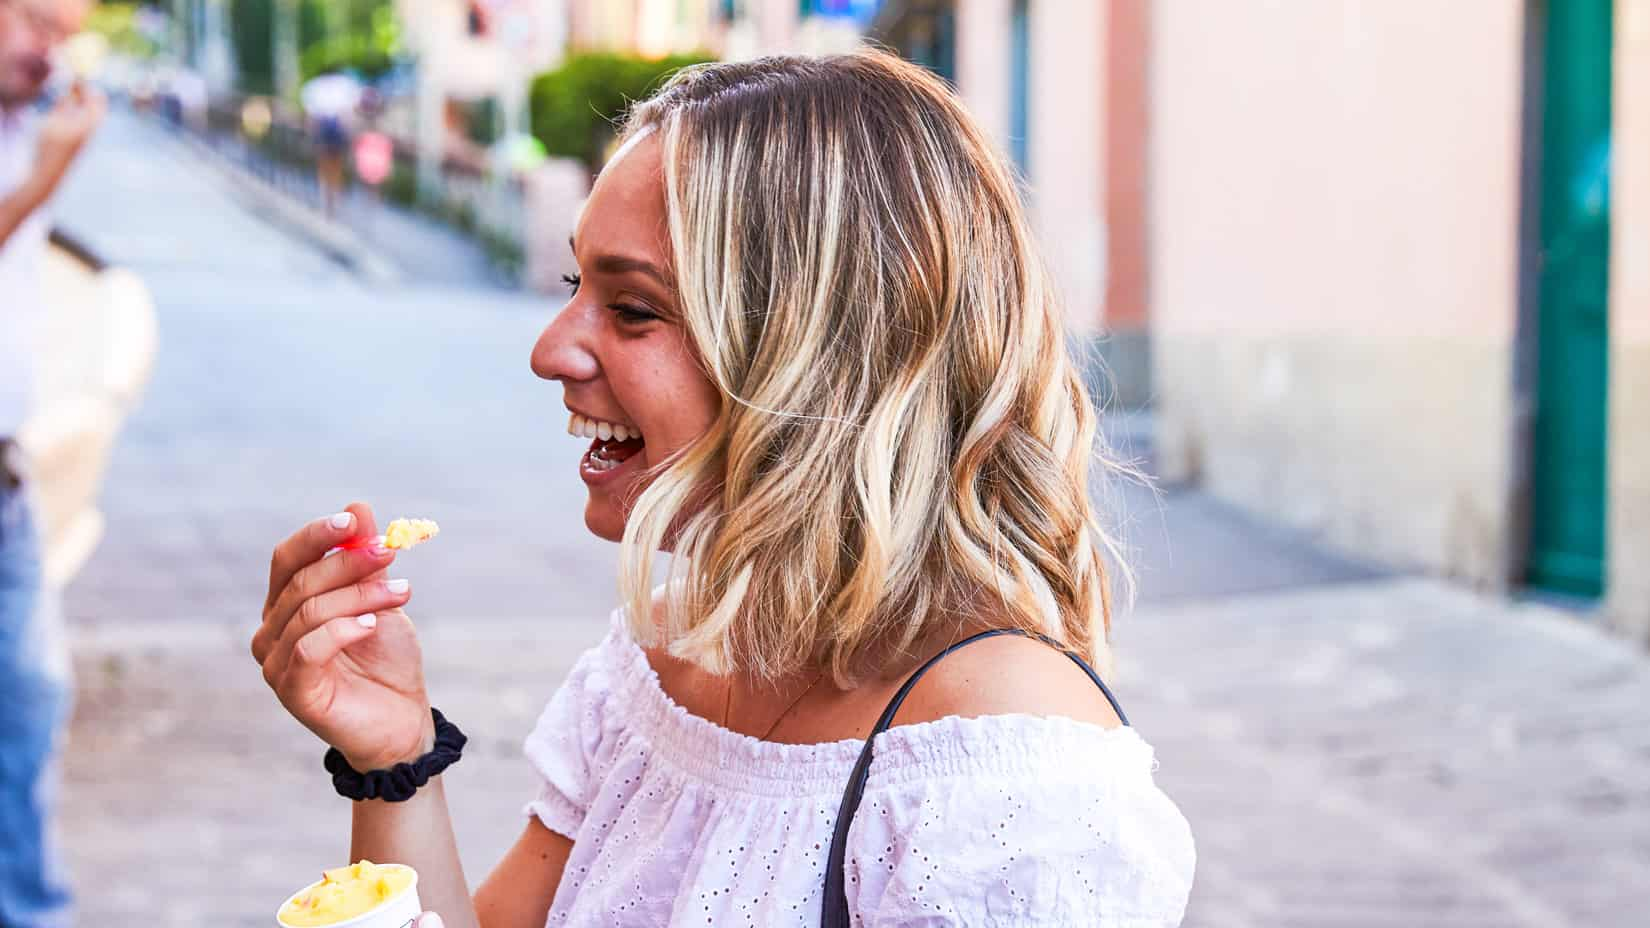 A student eating ice cream.